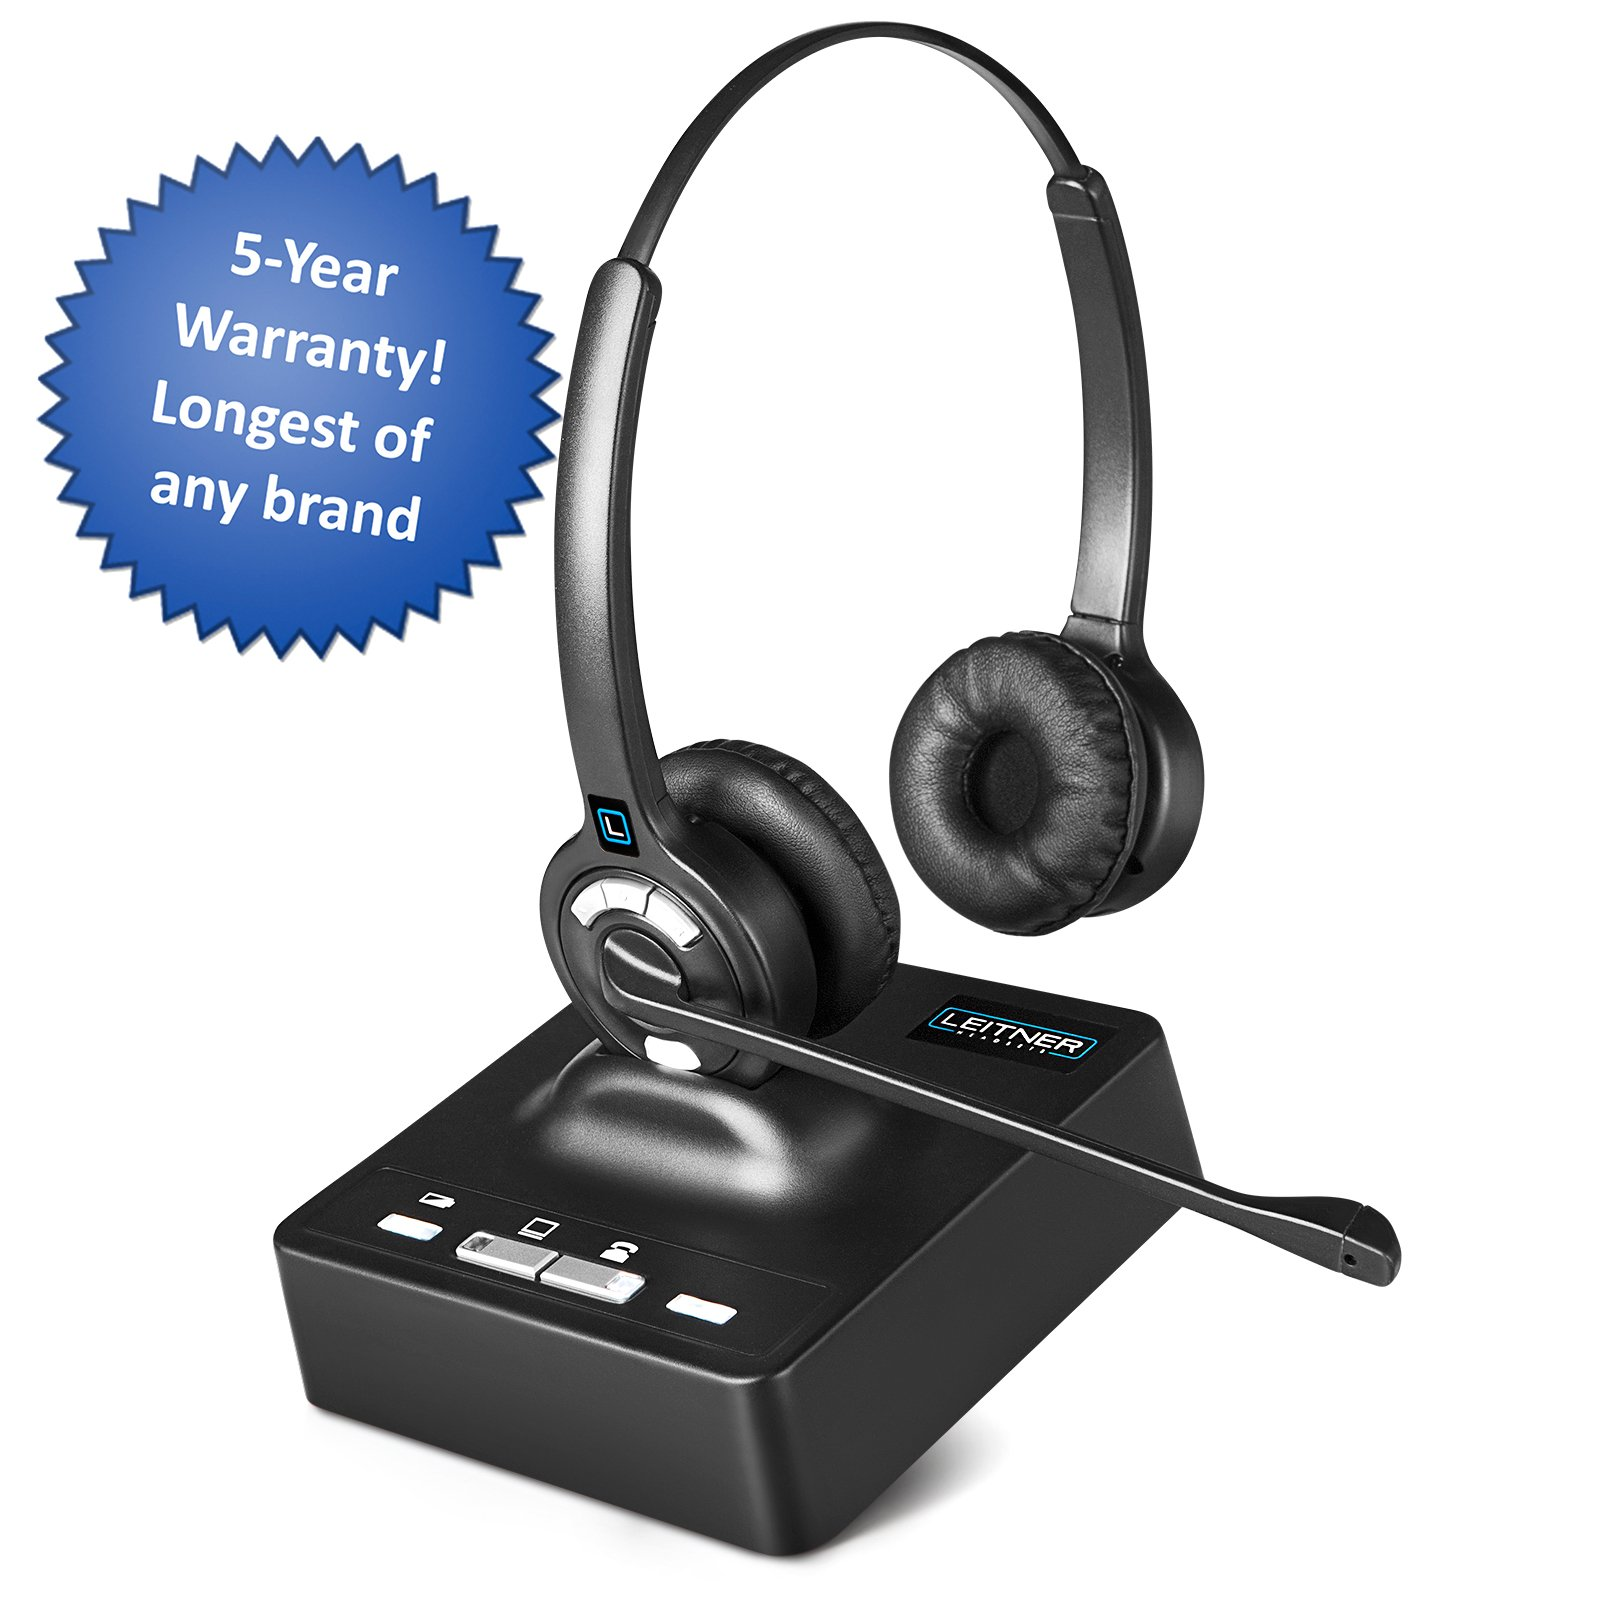 Leitner LH275 Dual-Ear Wireless Office Telephone Headset for Corded Office Phones - 5-Year Full-Replacement Warranty - Noise-Canceling and UniBase Technology - Also Works with PC and Mac